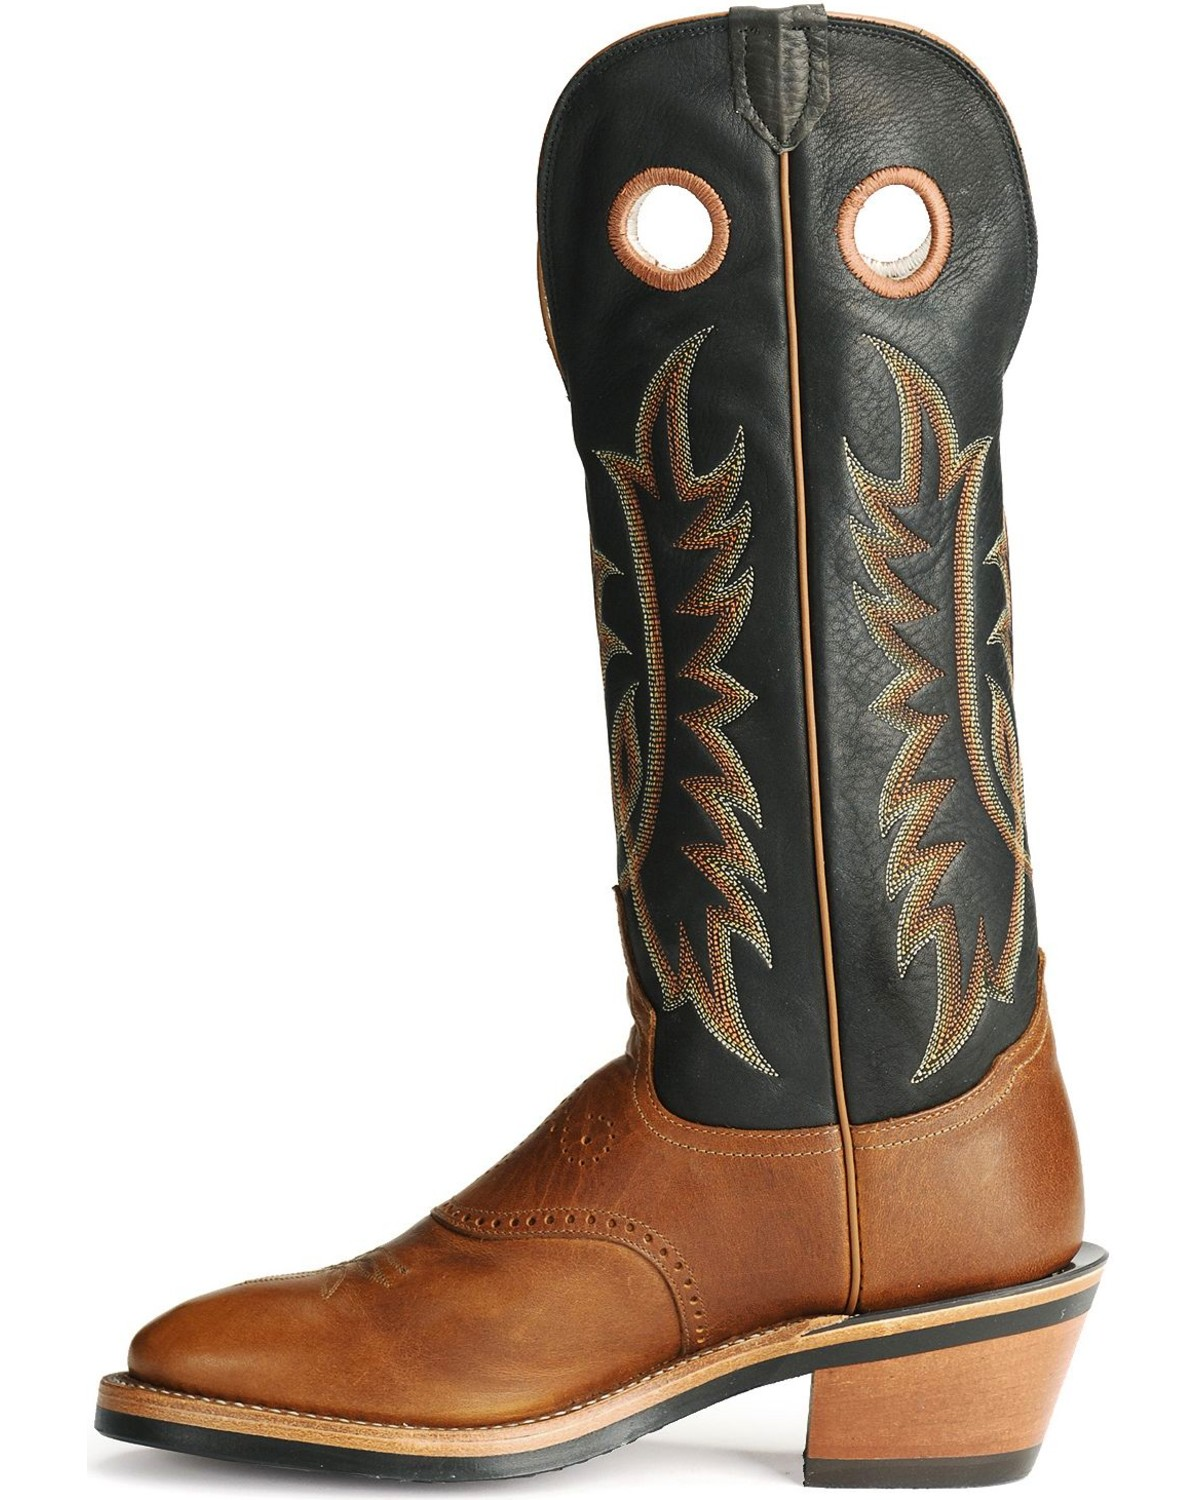 Tony Lama Men S Renegade Buckaroo Western Boots Boot Barn